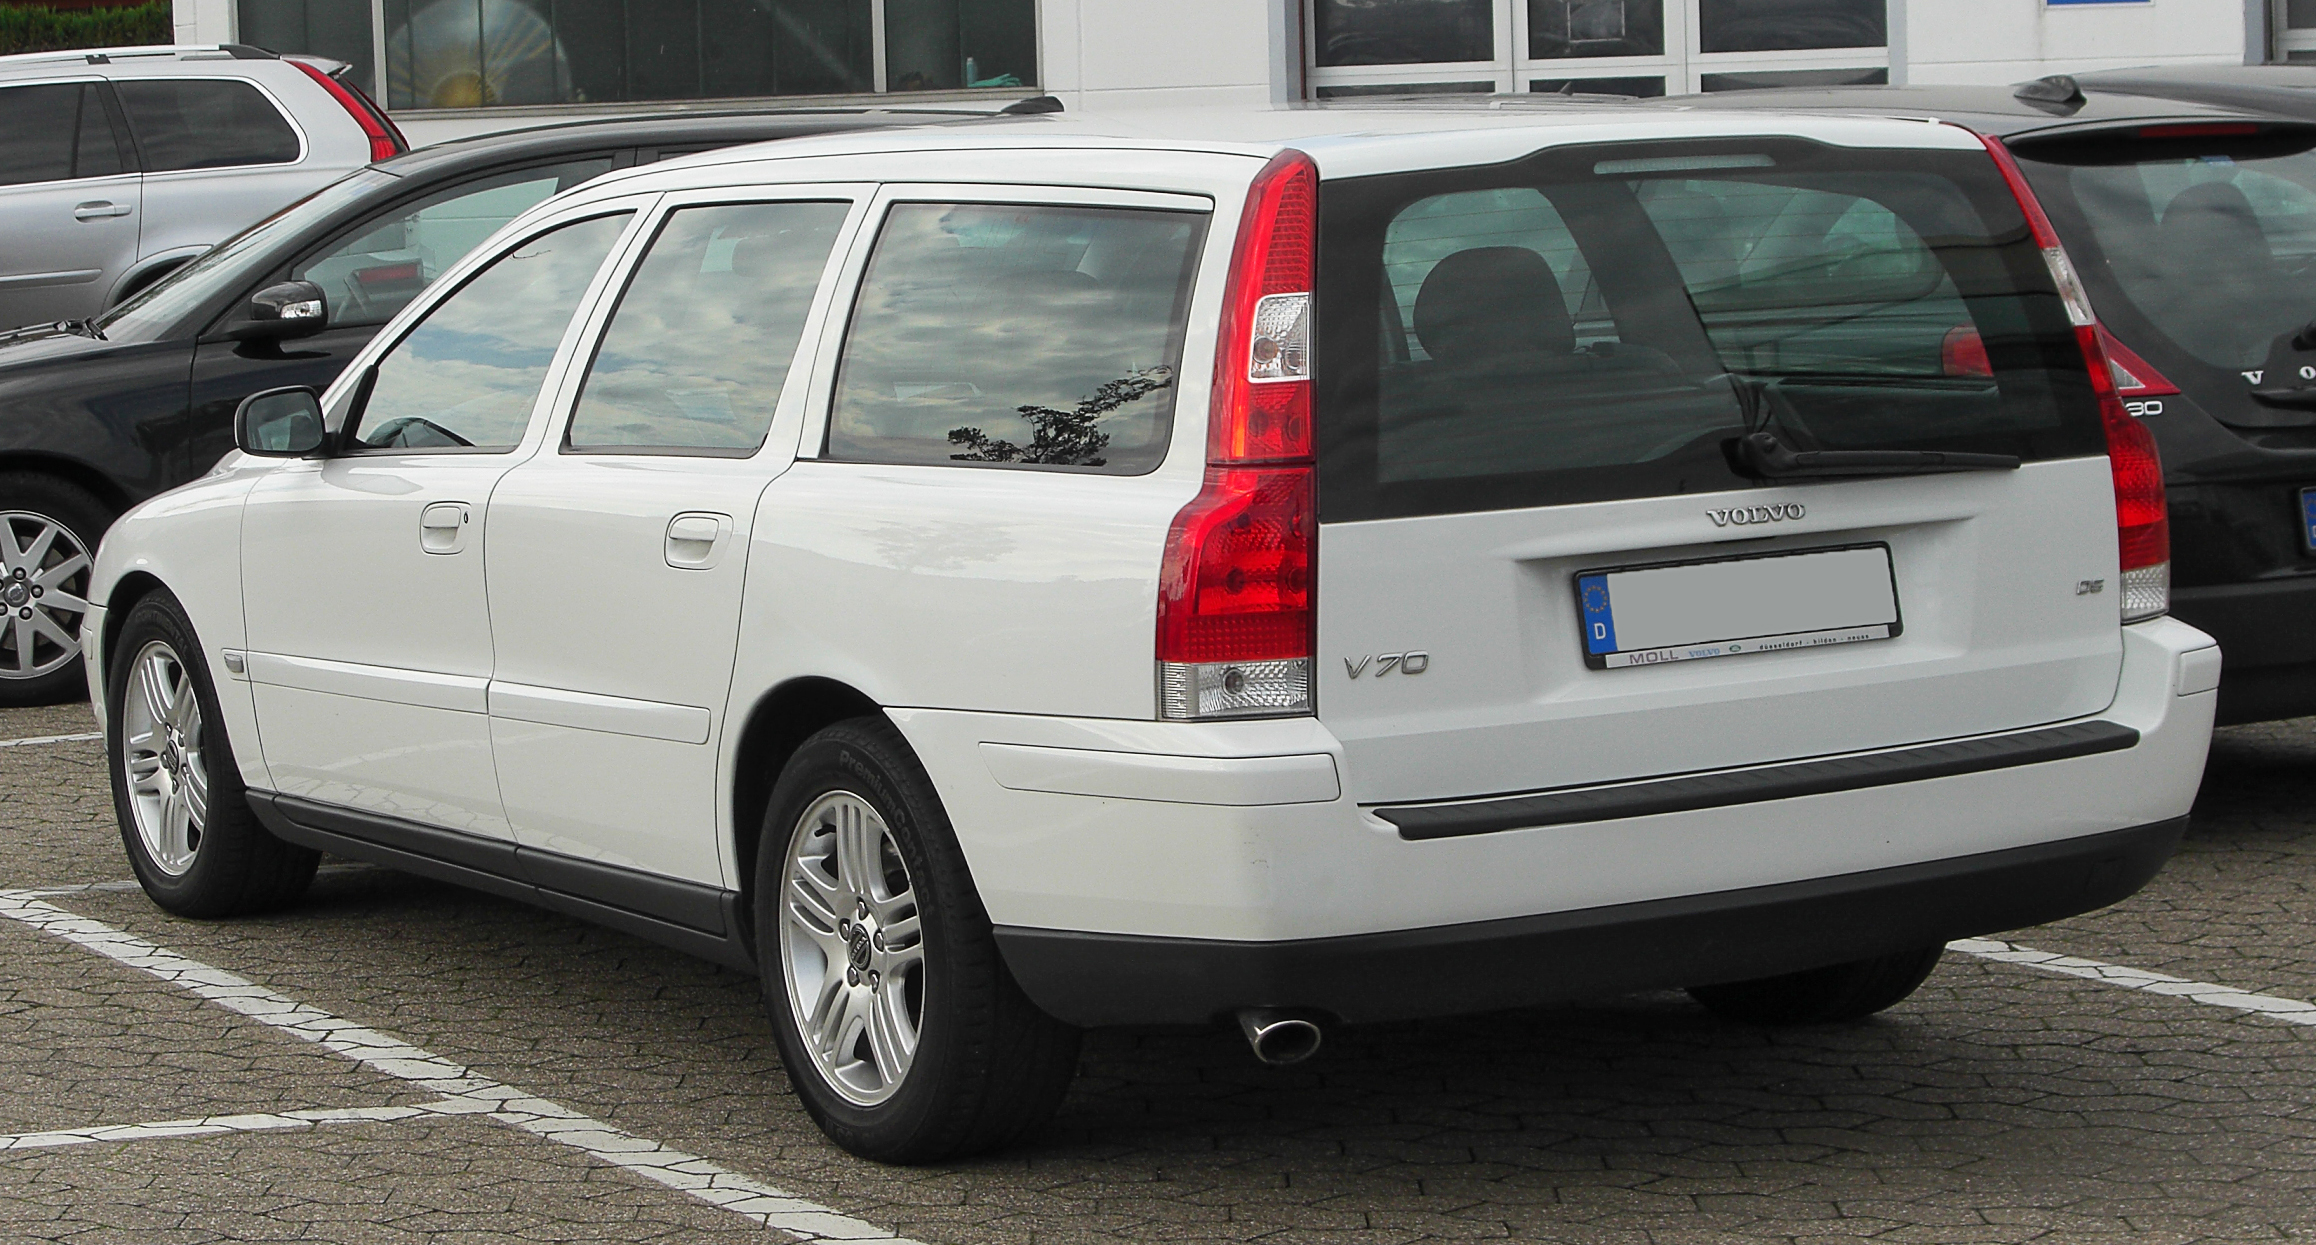 2010 volvo v70 information and photos zombiedrive. Black Bedroom Furniture Sets. Home Design Ideas